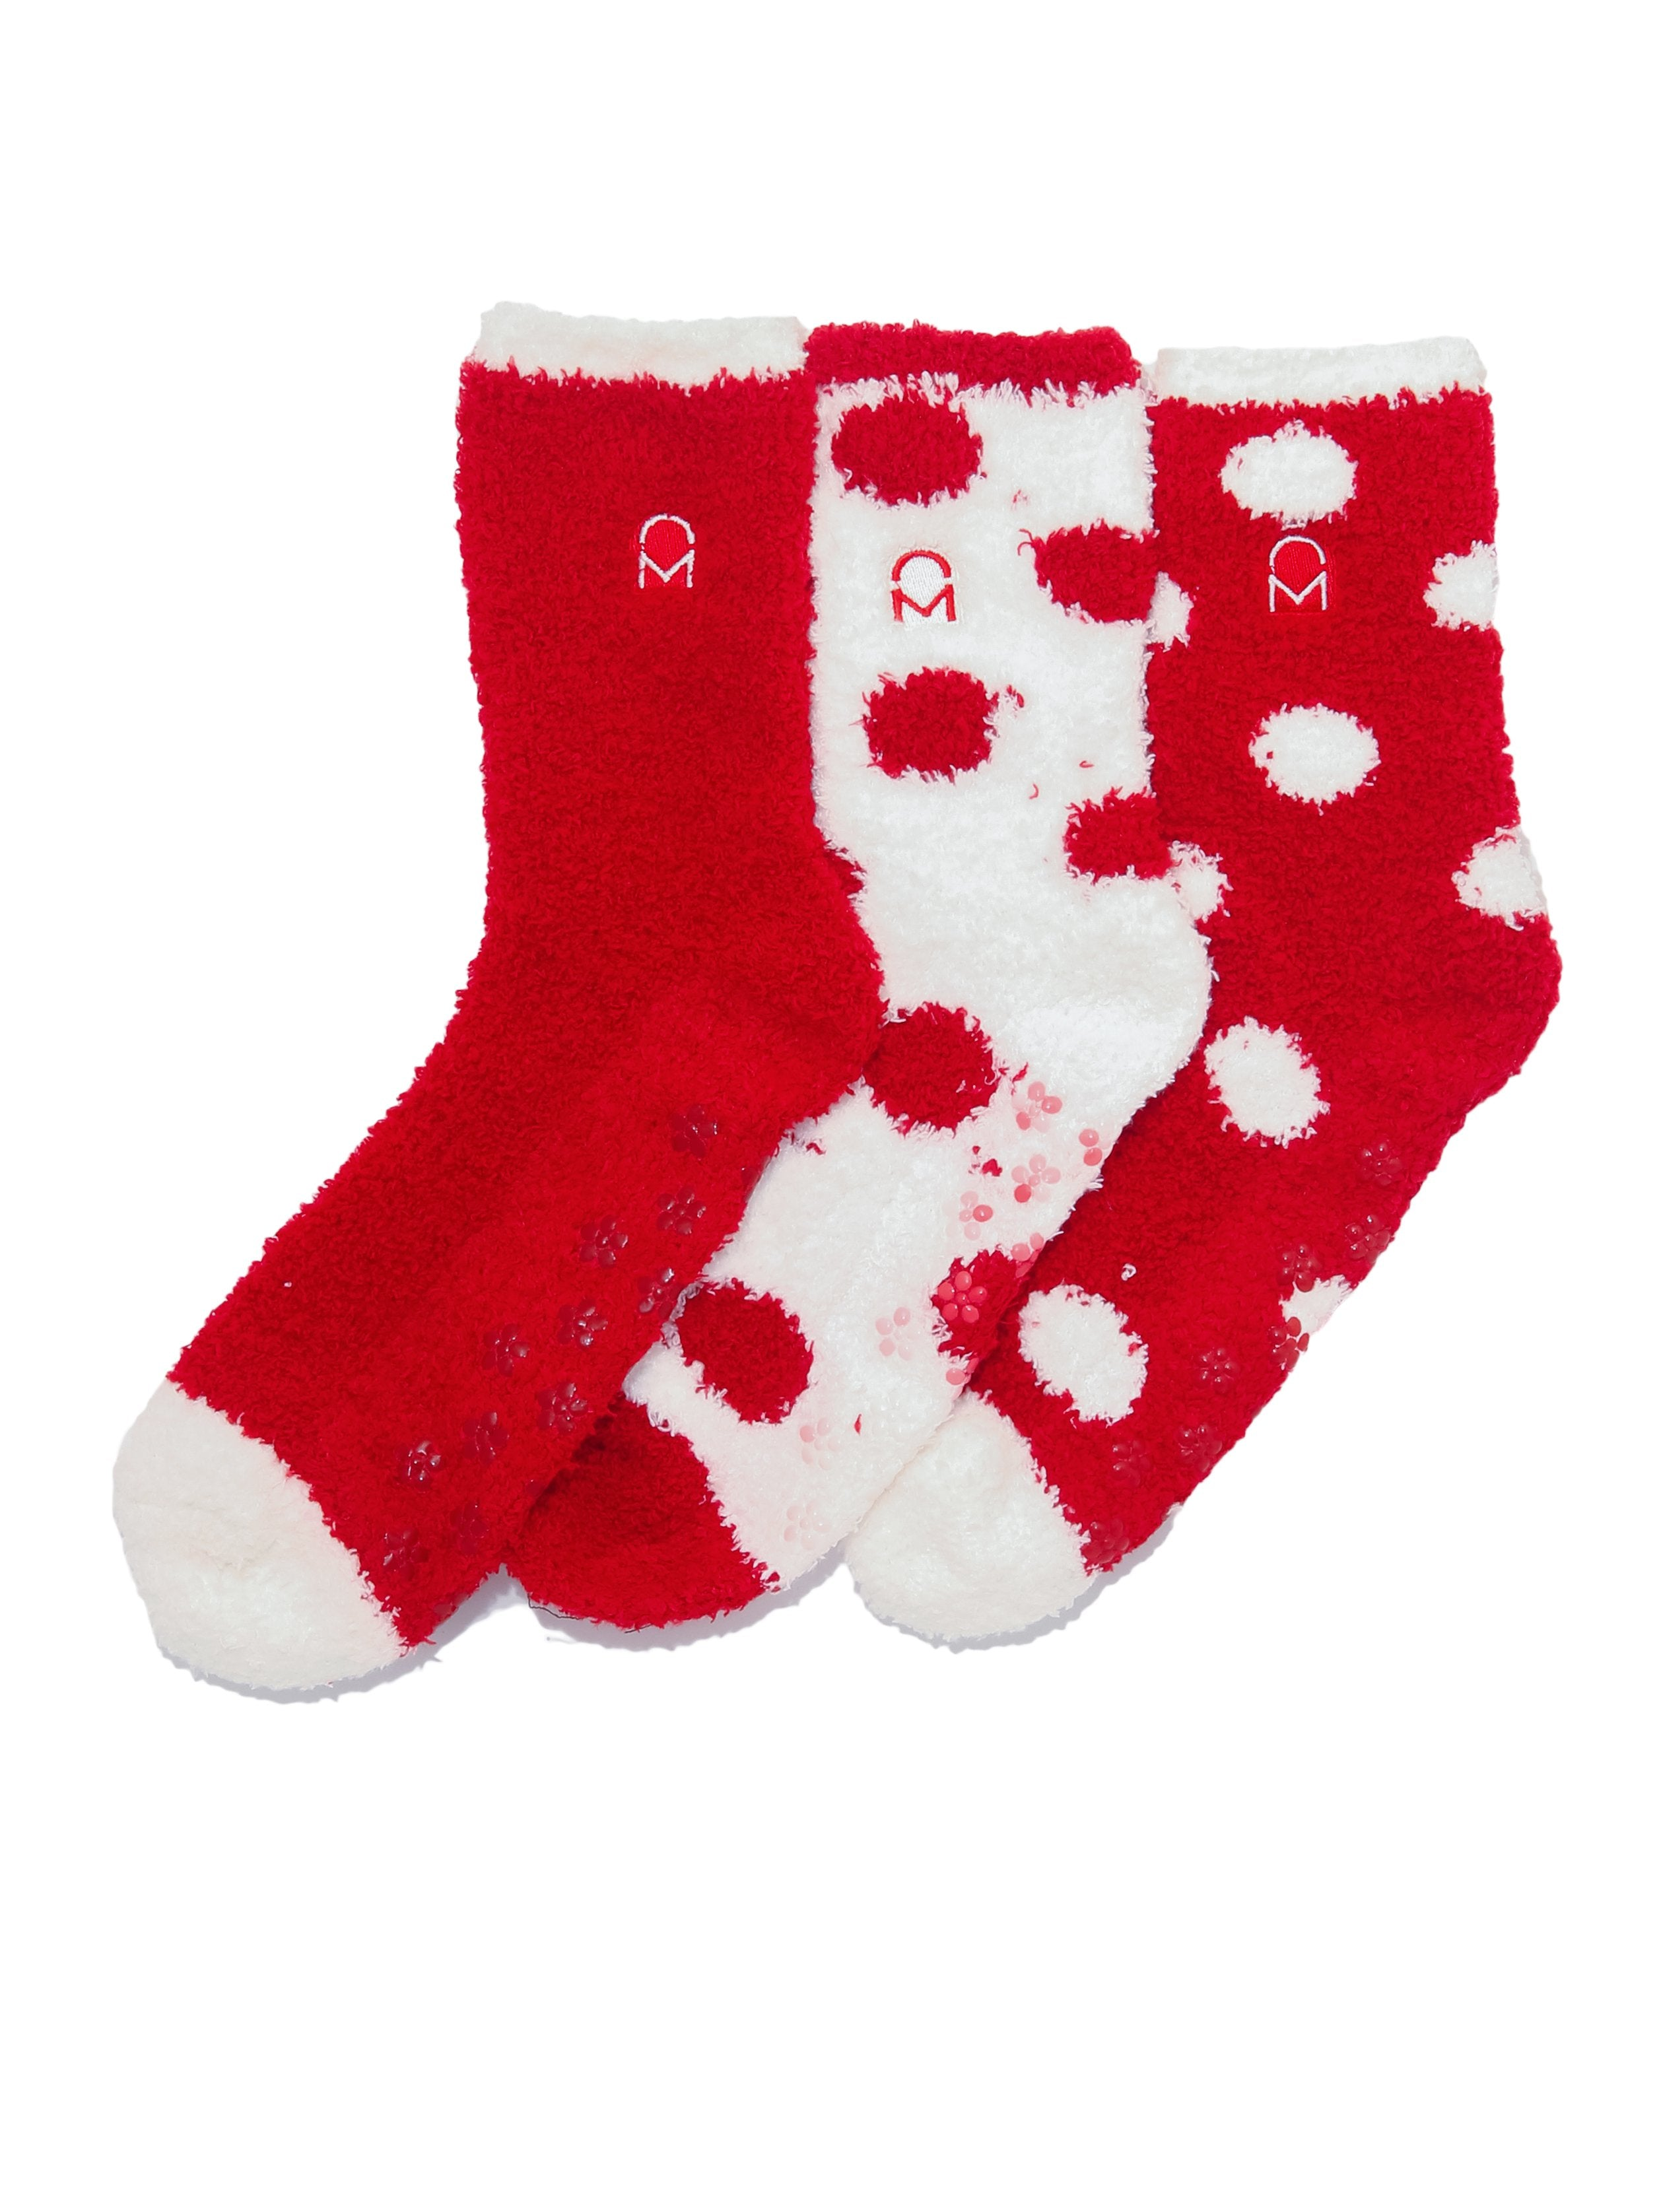 Women's (3 Pairs) Soft Anti-Skid Fuzzy Winter Crew Socks - Set D8